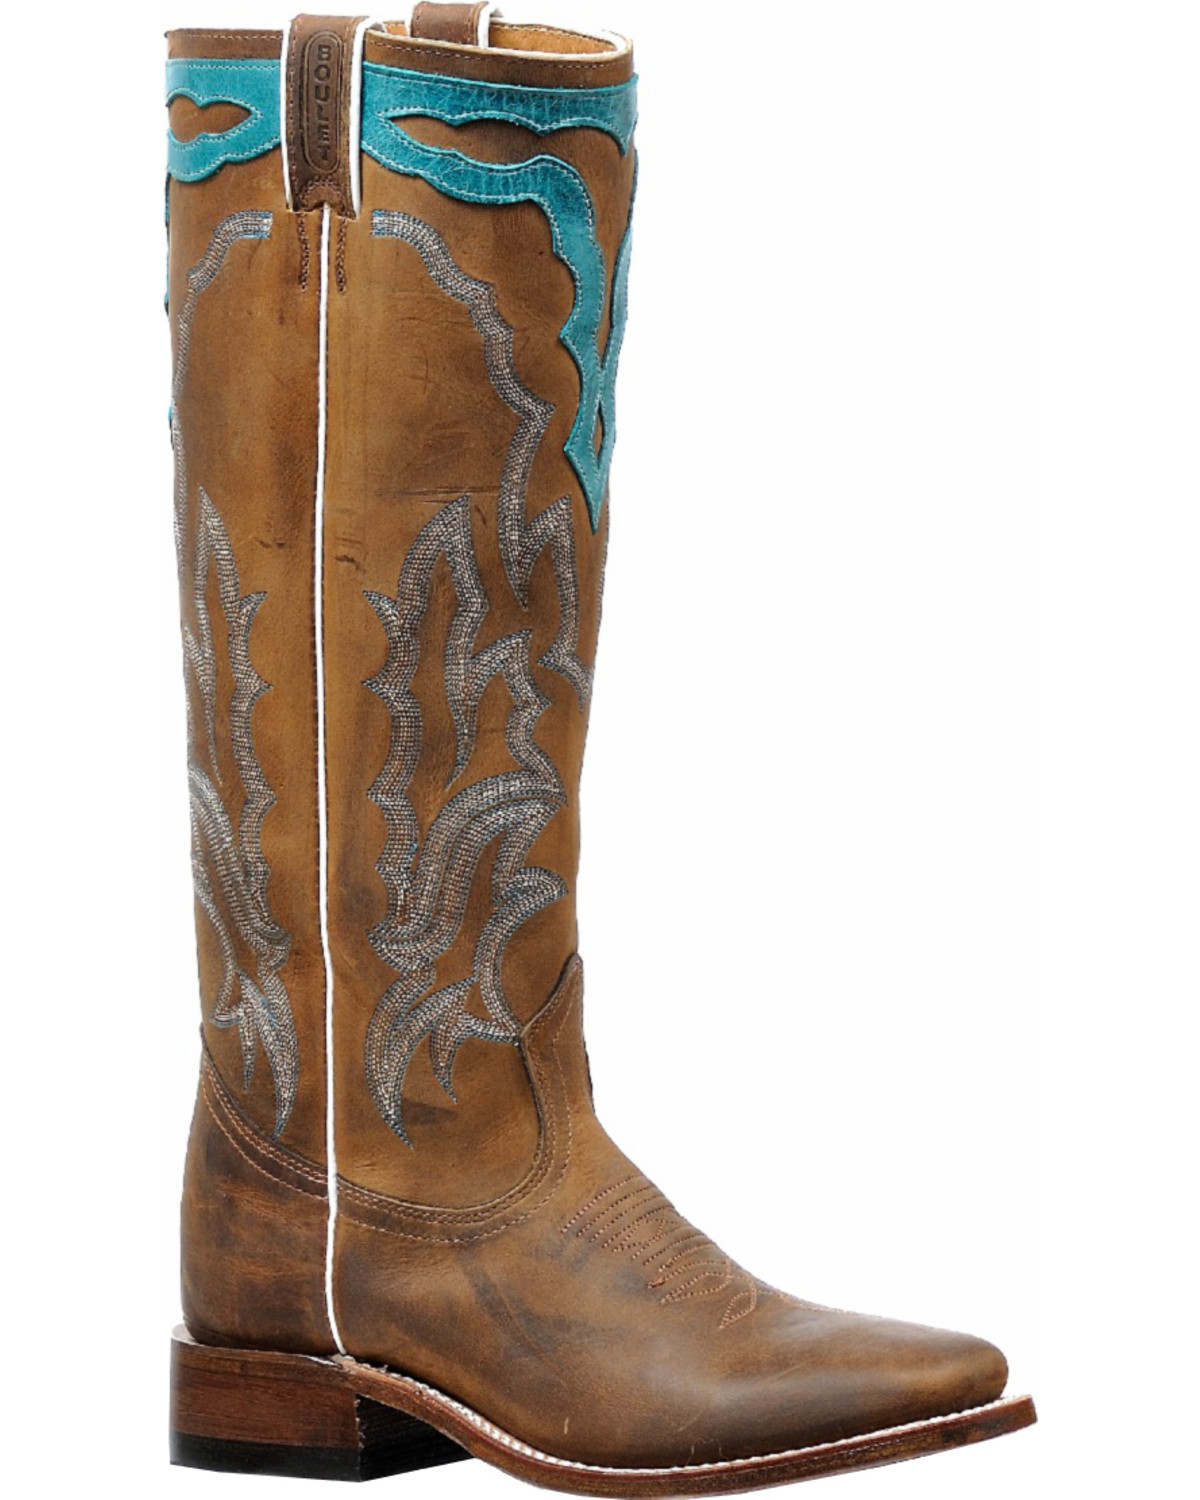 4c3fc2728f5 Boulet Women's Brown Cowboy Tall Western Boots - Square Toe